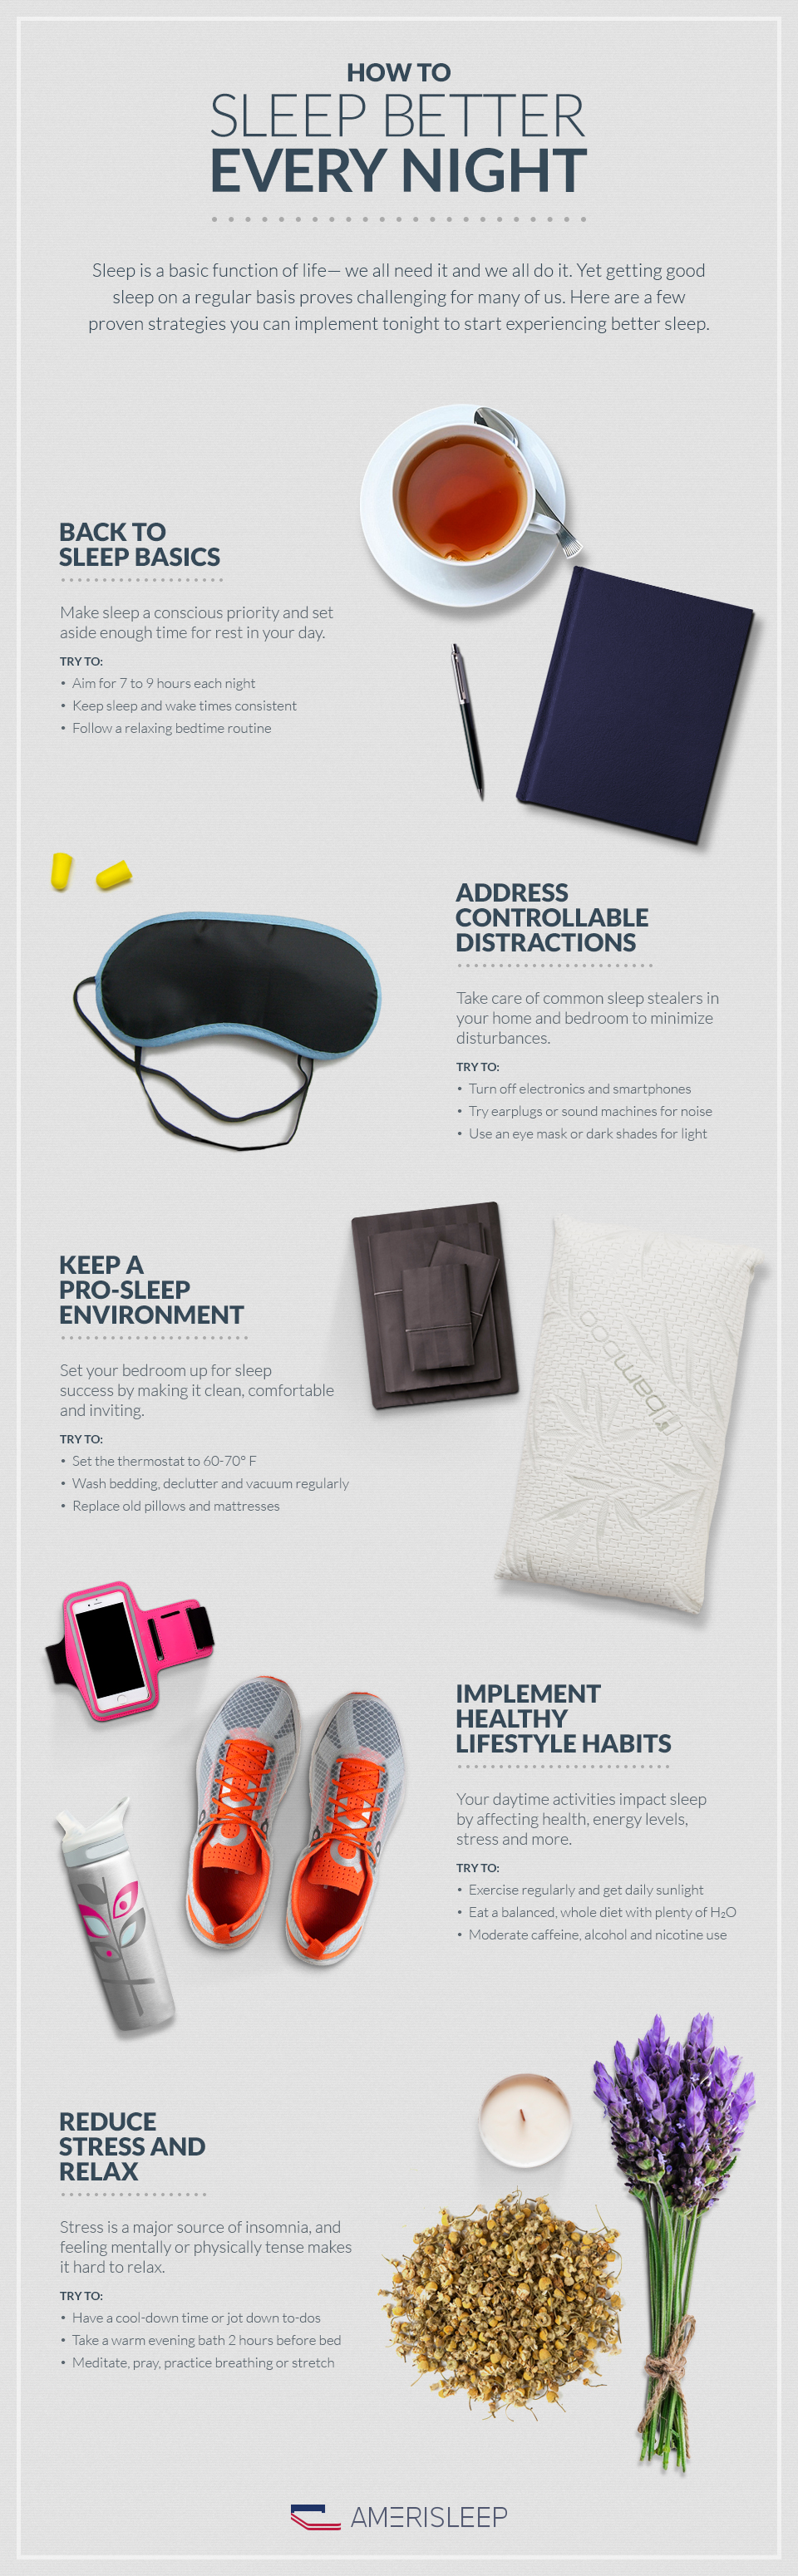 amerisleep-sleep-better-everynight-infographic